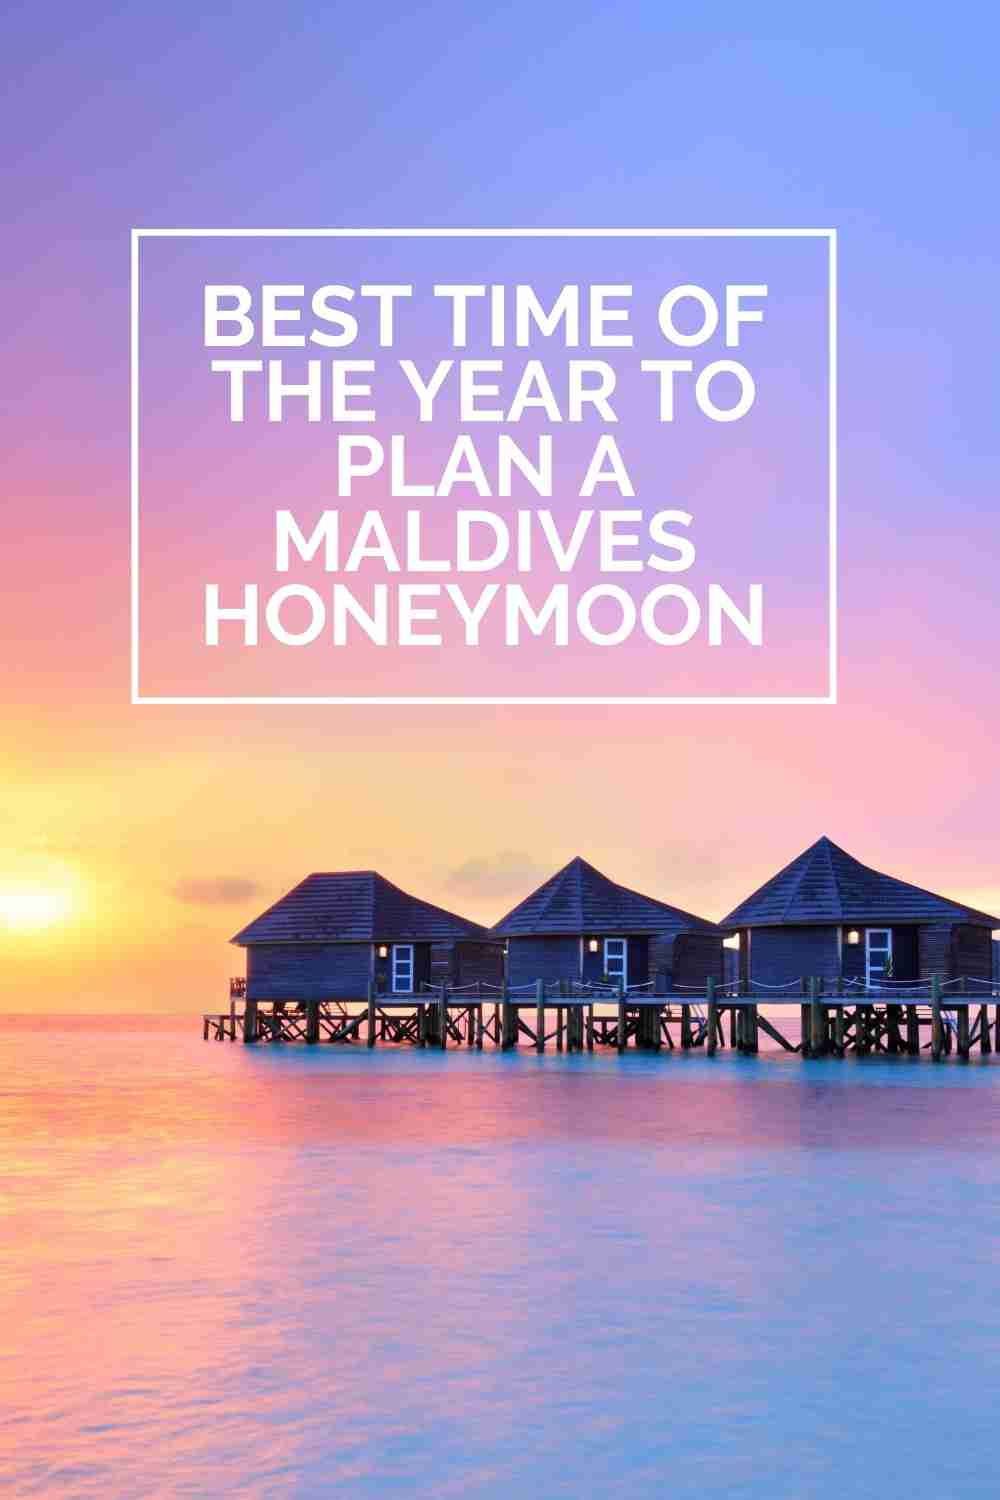 Best time of Year to Plan Maldives Honeymoon